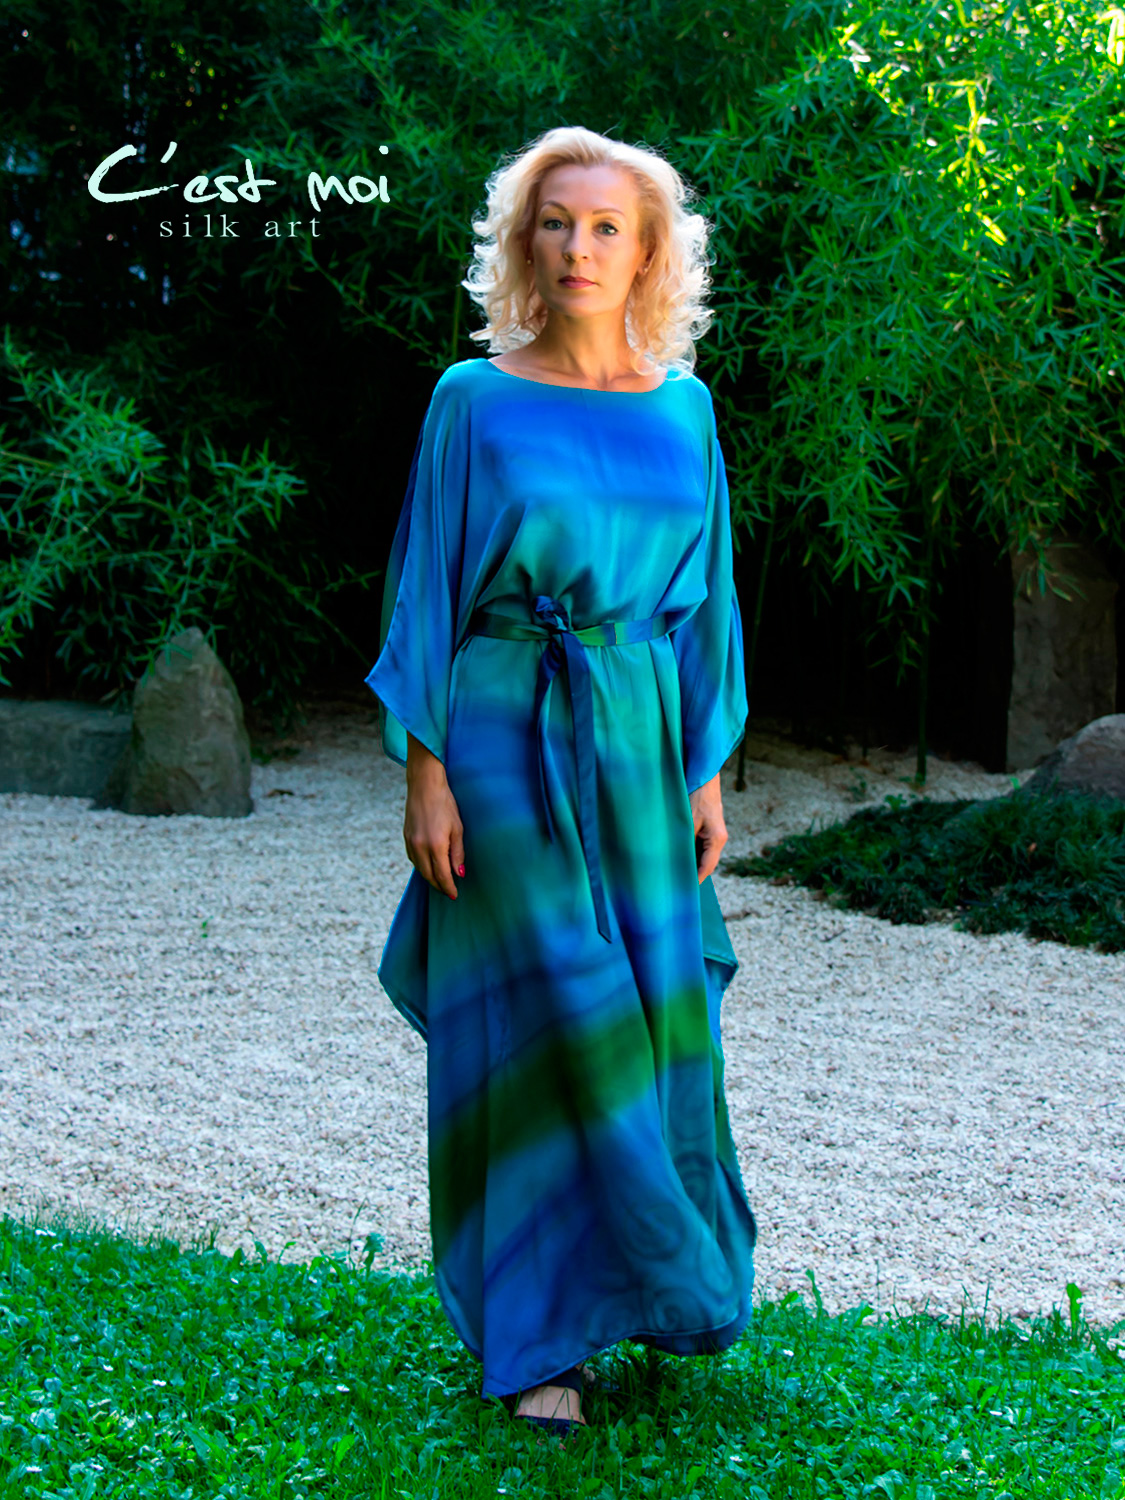 turquoise-casual-silk-dress-by-CestMoi-03